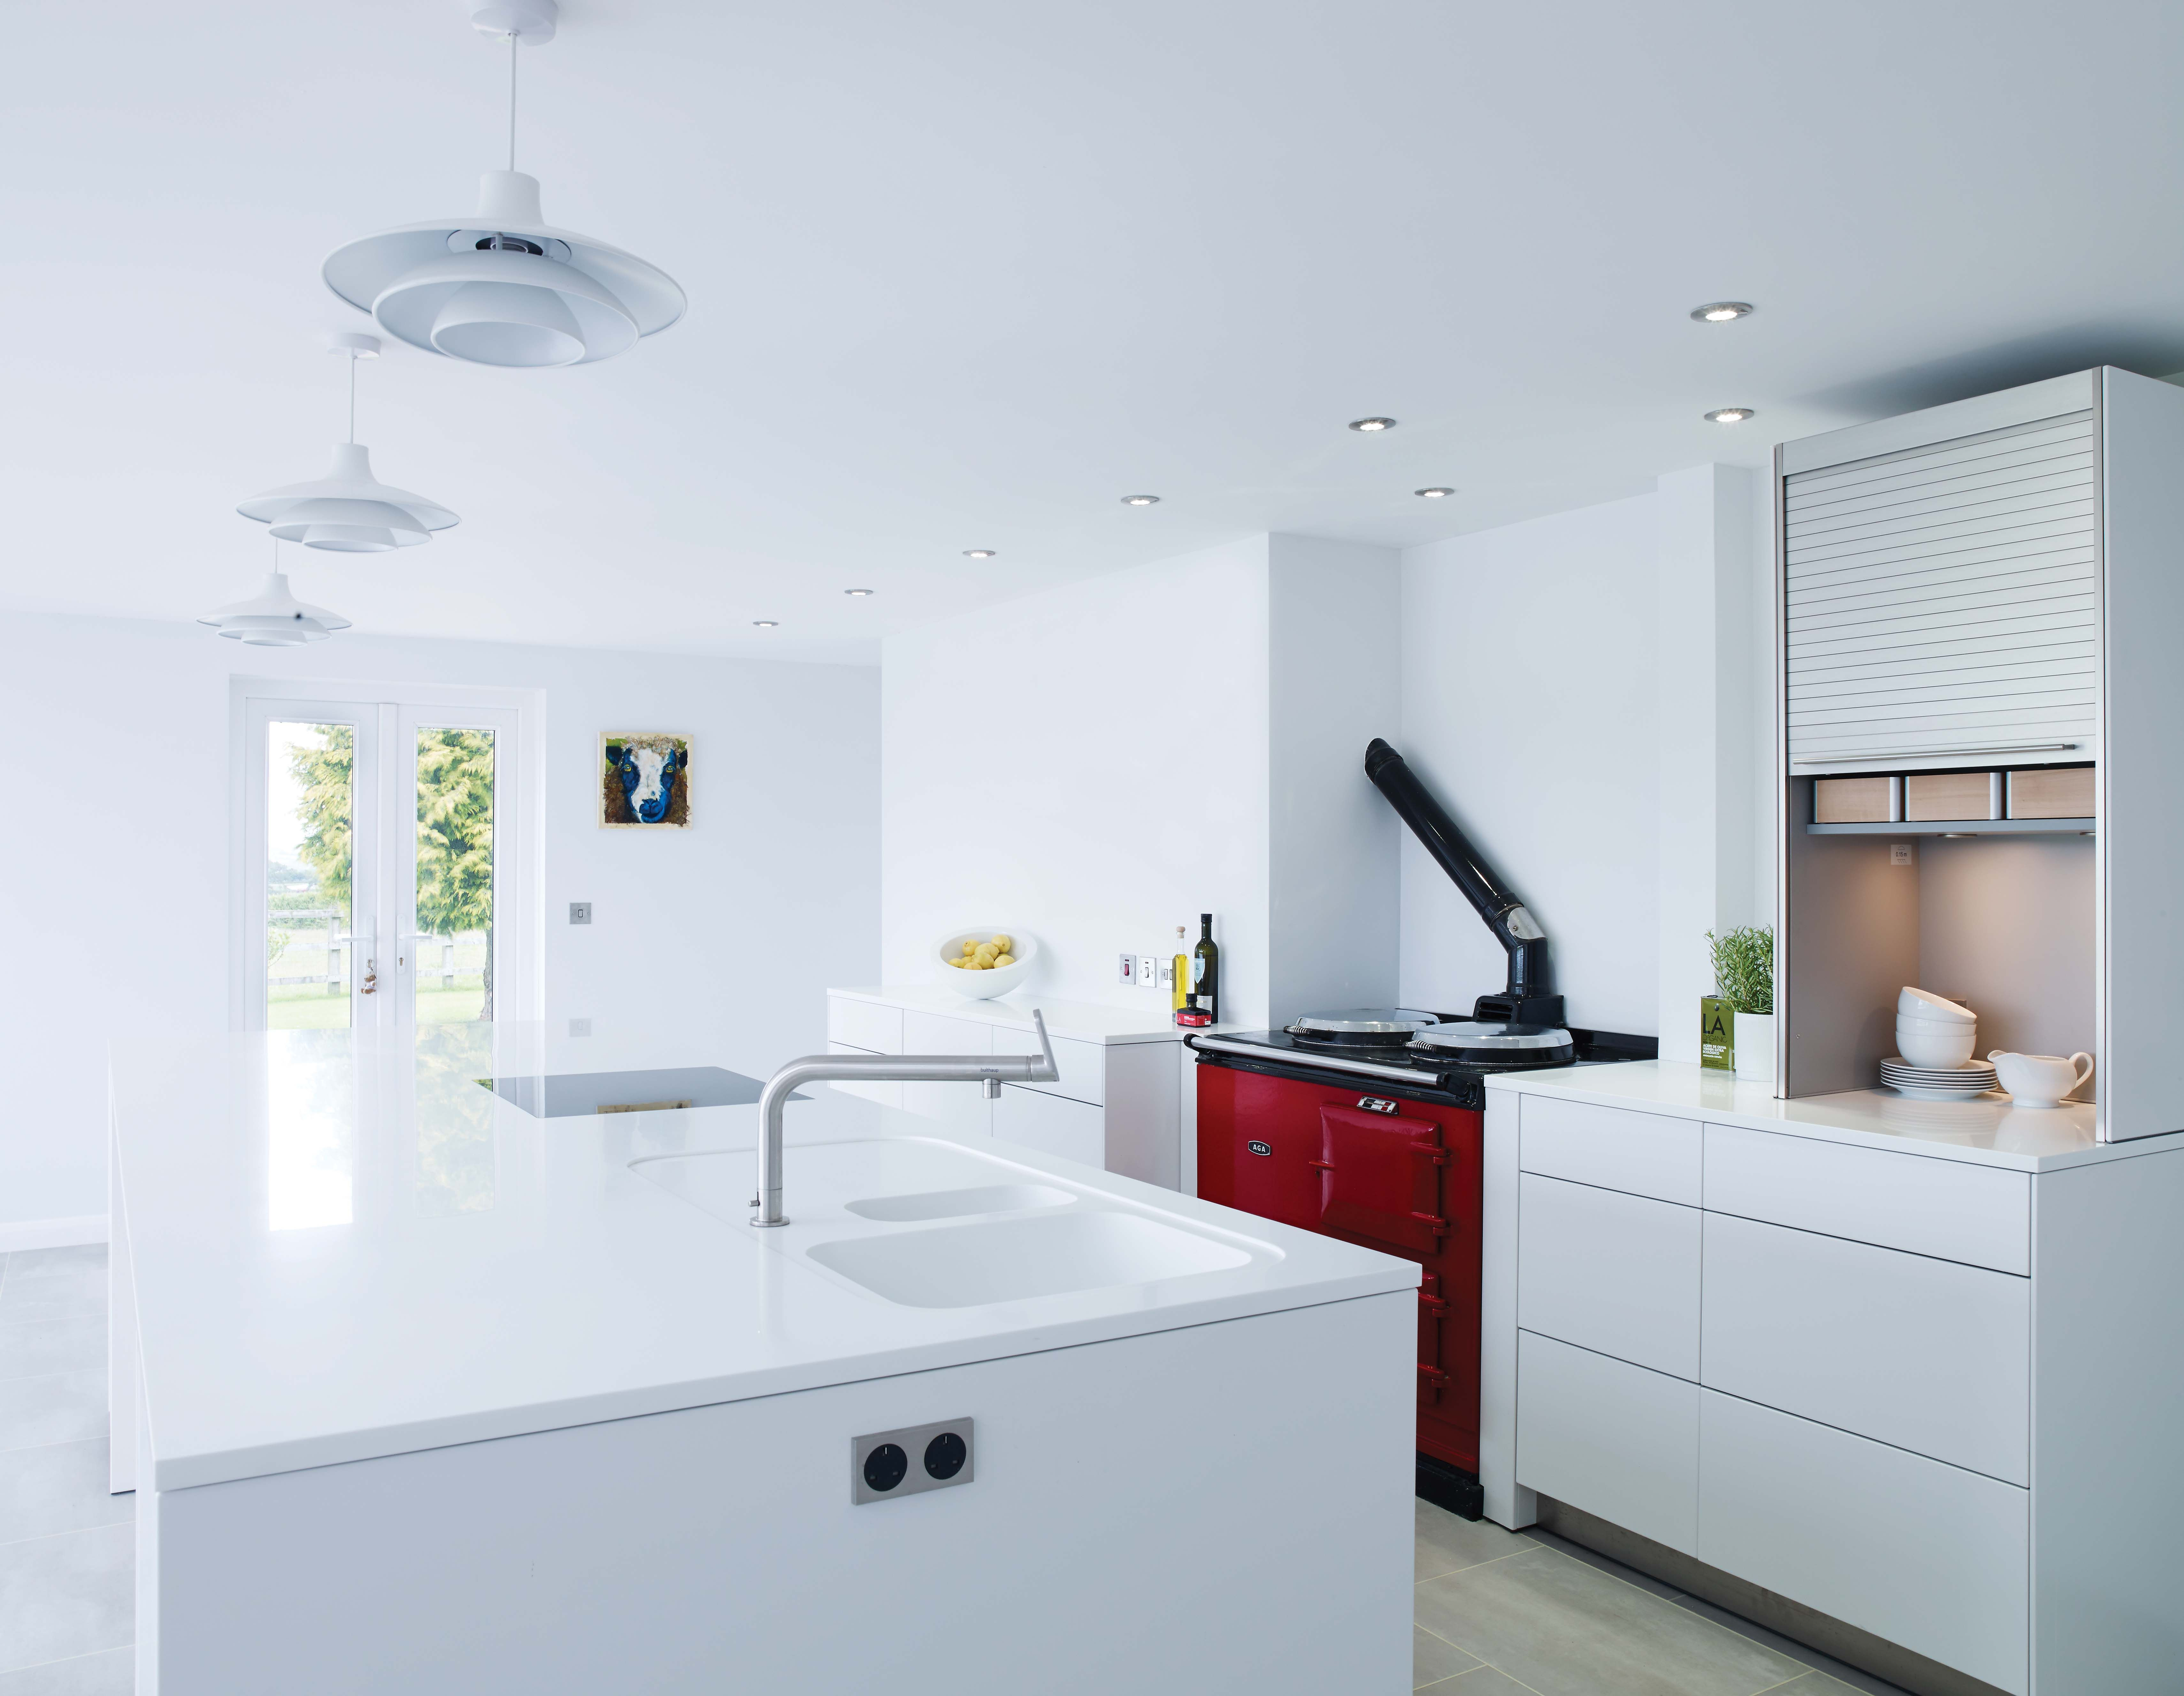 Contemporary, white bulthaup b3 kitchen with contrasting red ...